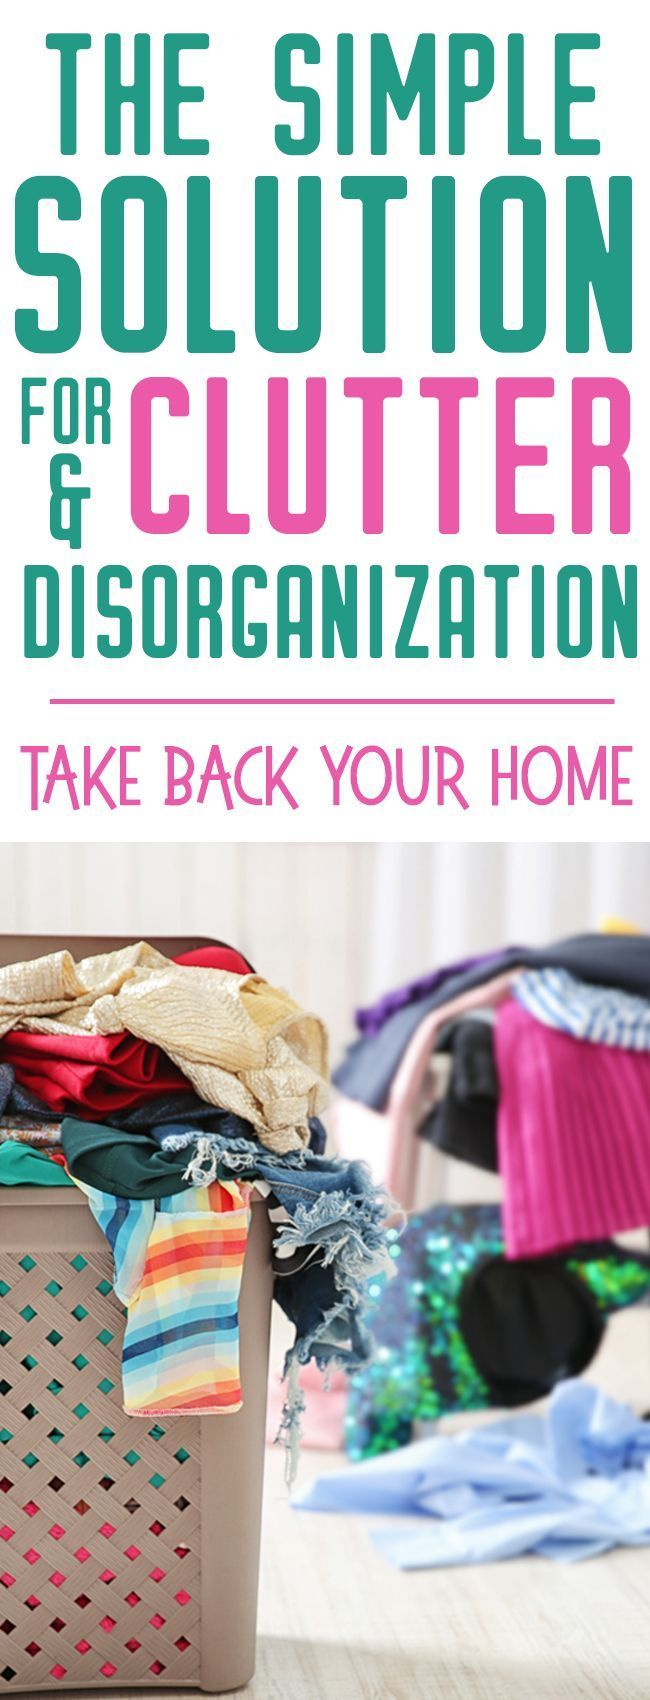 Do you need organization ideas and clutter solutions? I KNOW what it's like to live in a cluttery mess - this can help! #cluttersolutions